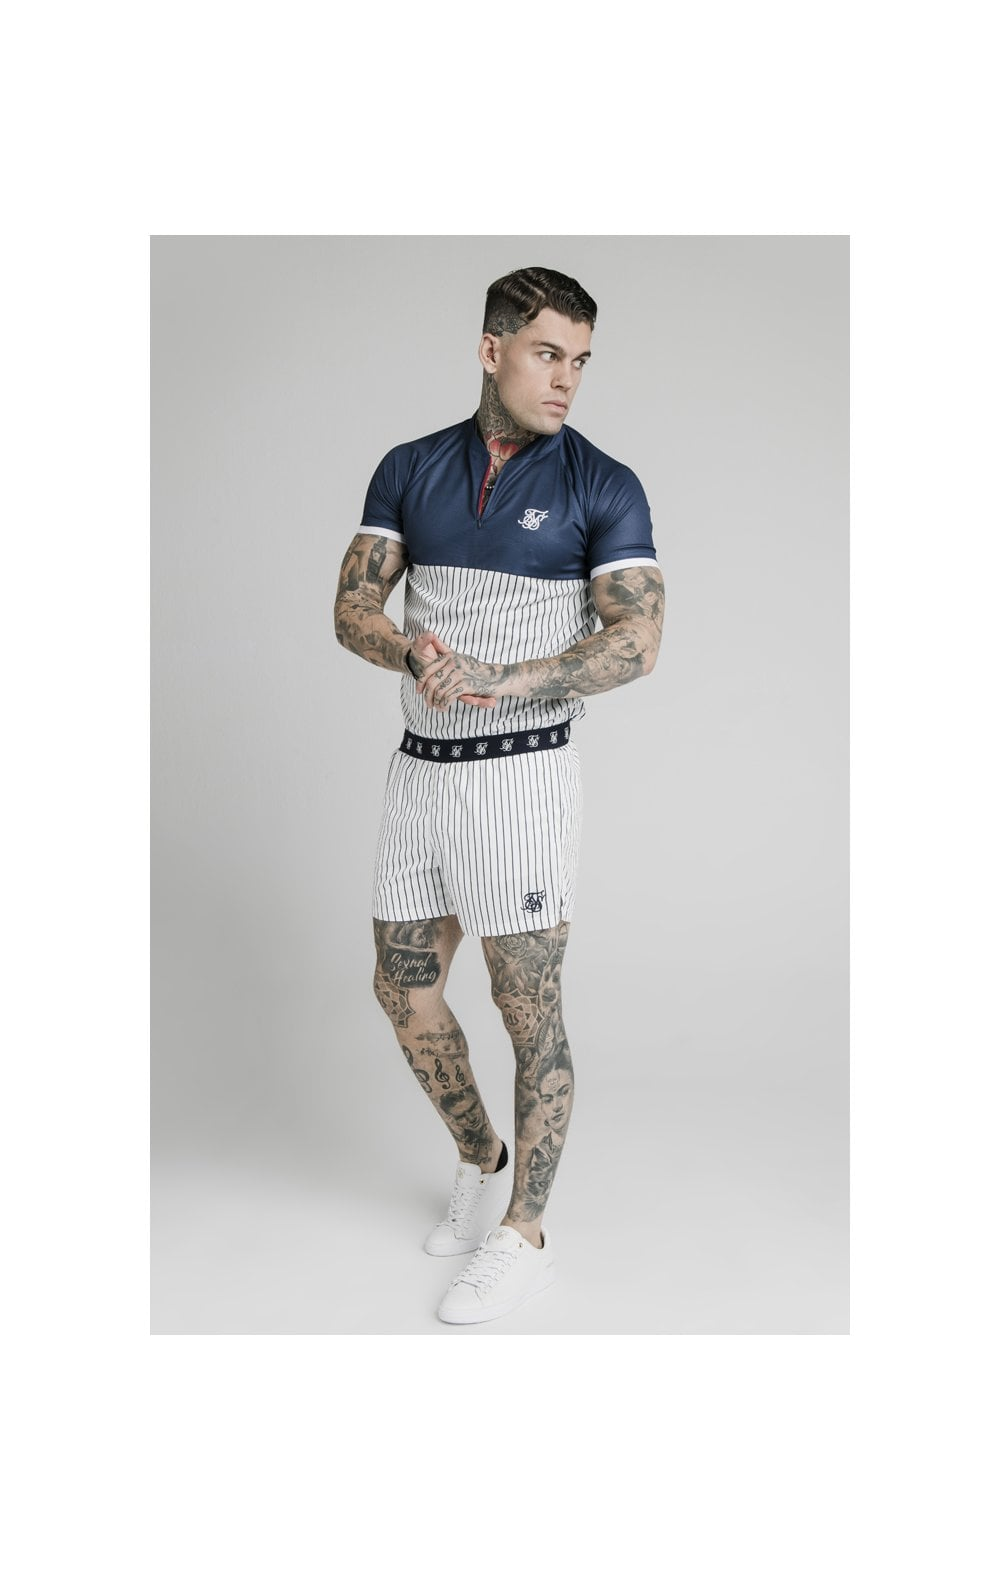 Load image into Gallery viewer, SikSilk S/S Pinstripe Baseball Tee - Navy & White (3)